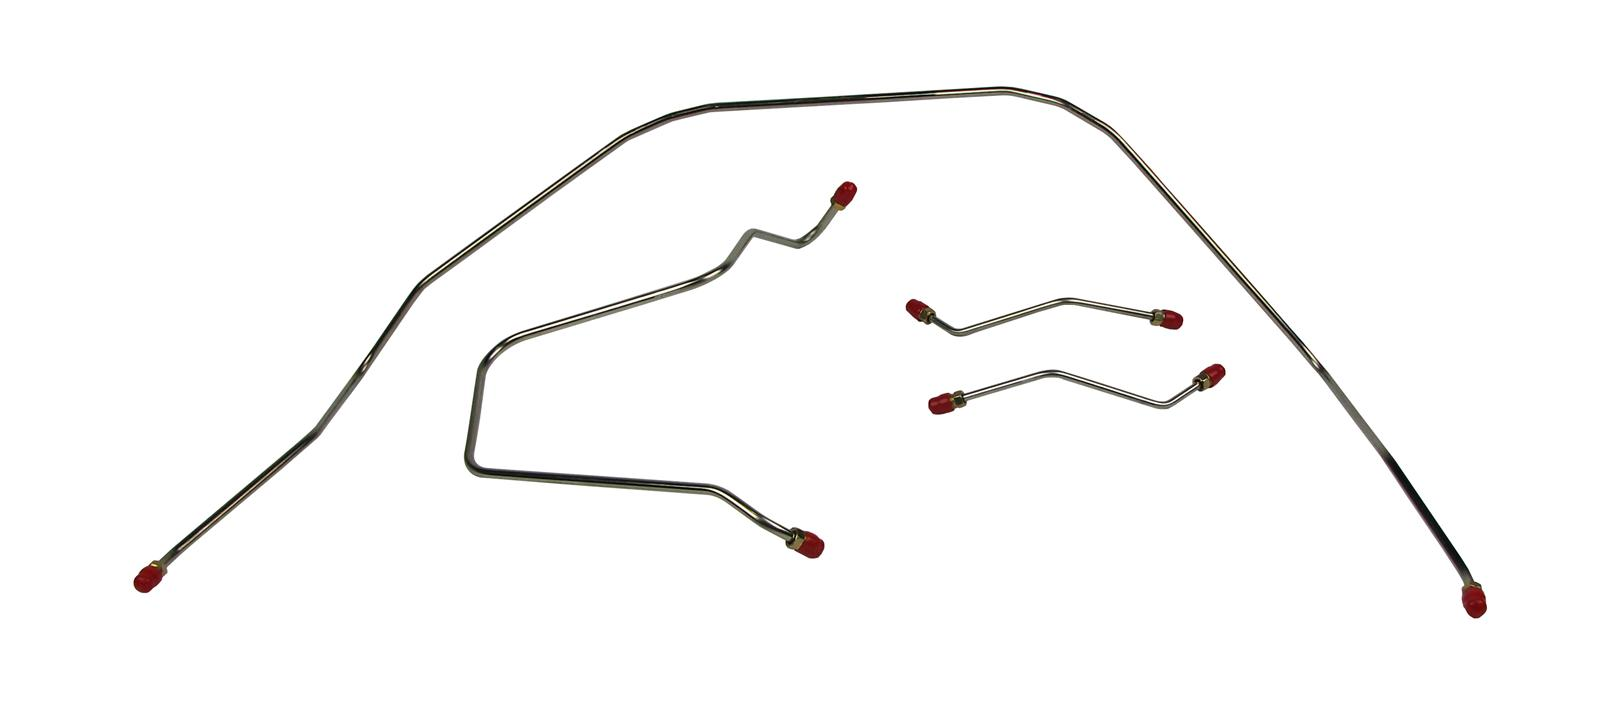 right stuff detailing bin5901 brake line steel front to